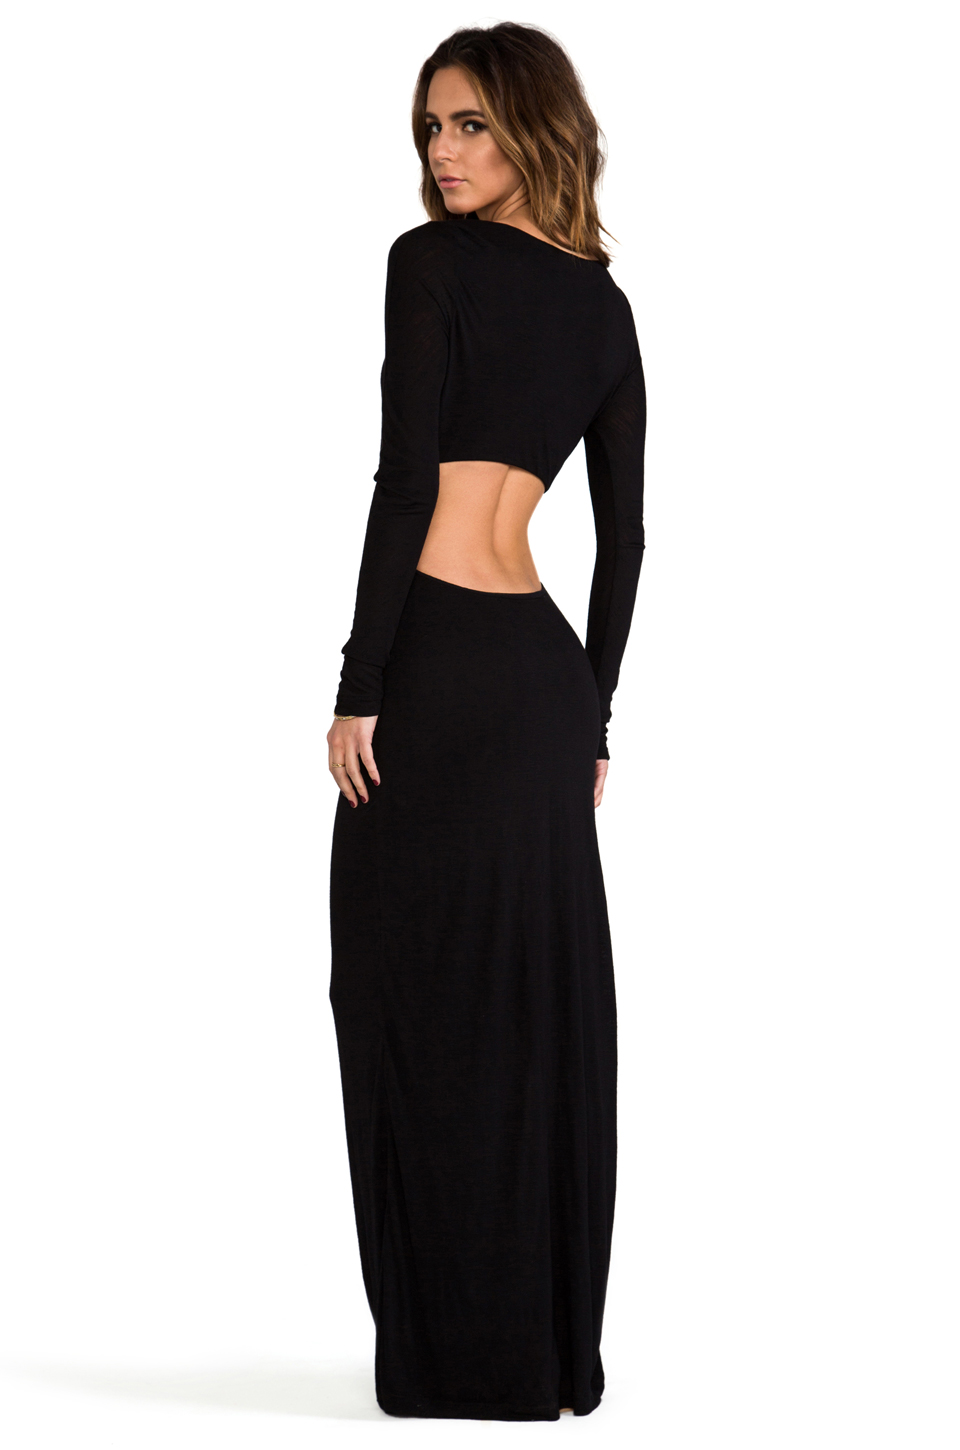 Pencey Standard EXCLUSIVE Long Sleeve Open Back Maxi Dress in Black